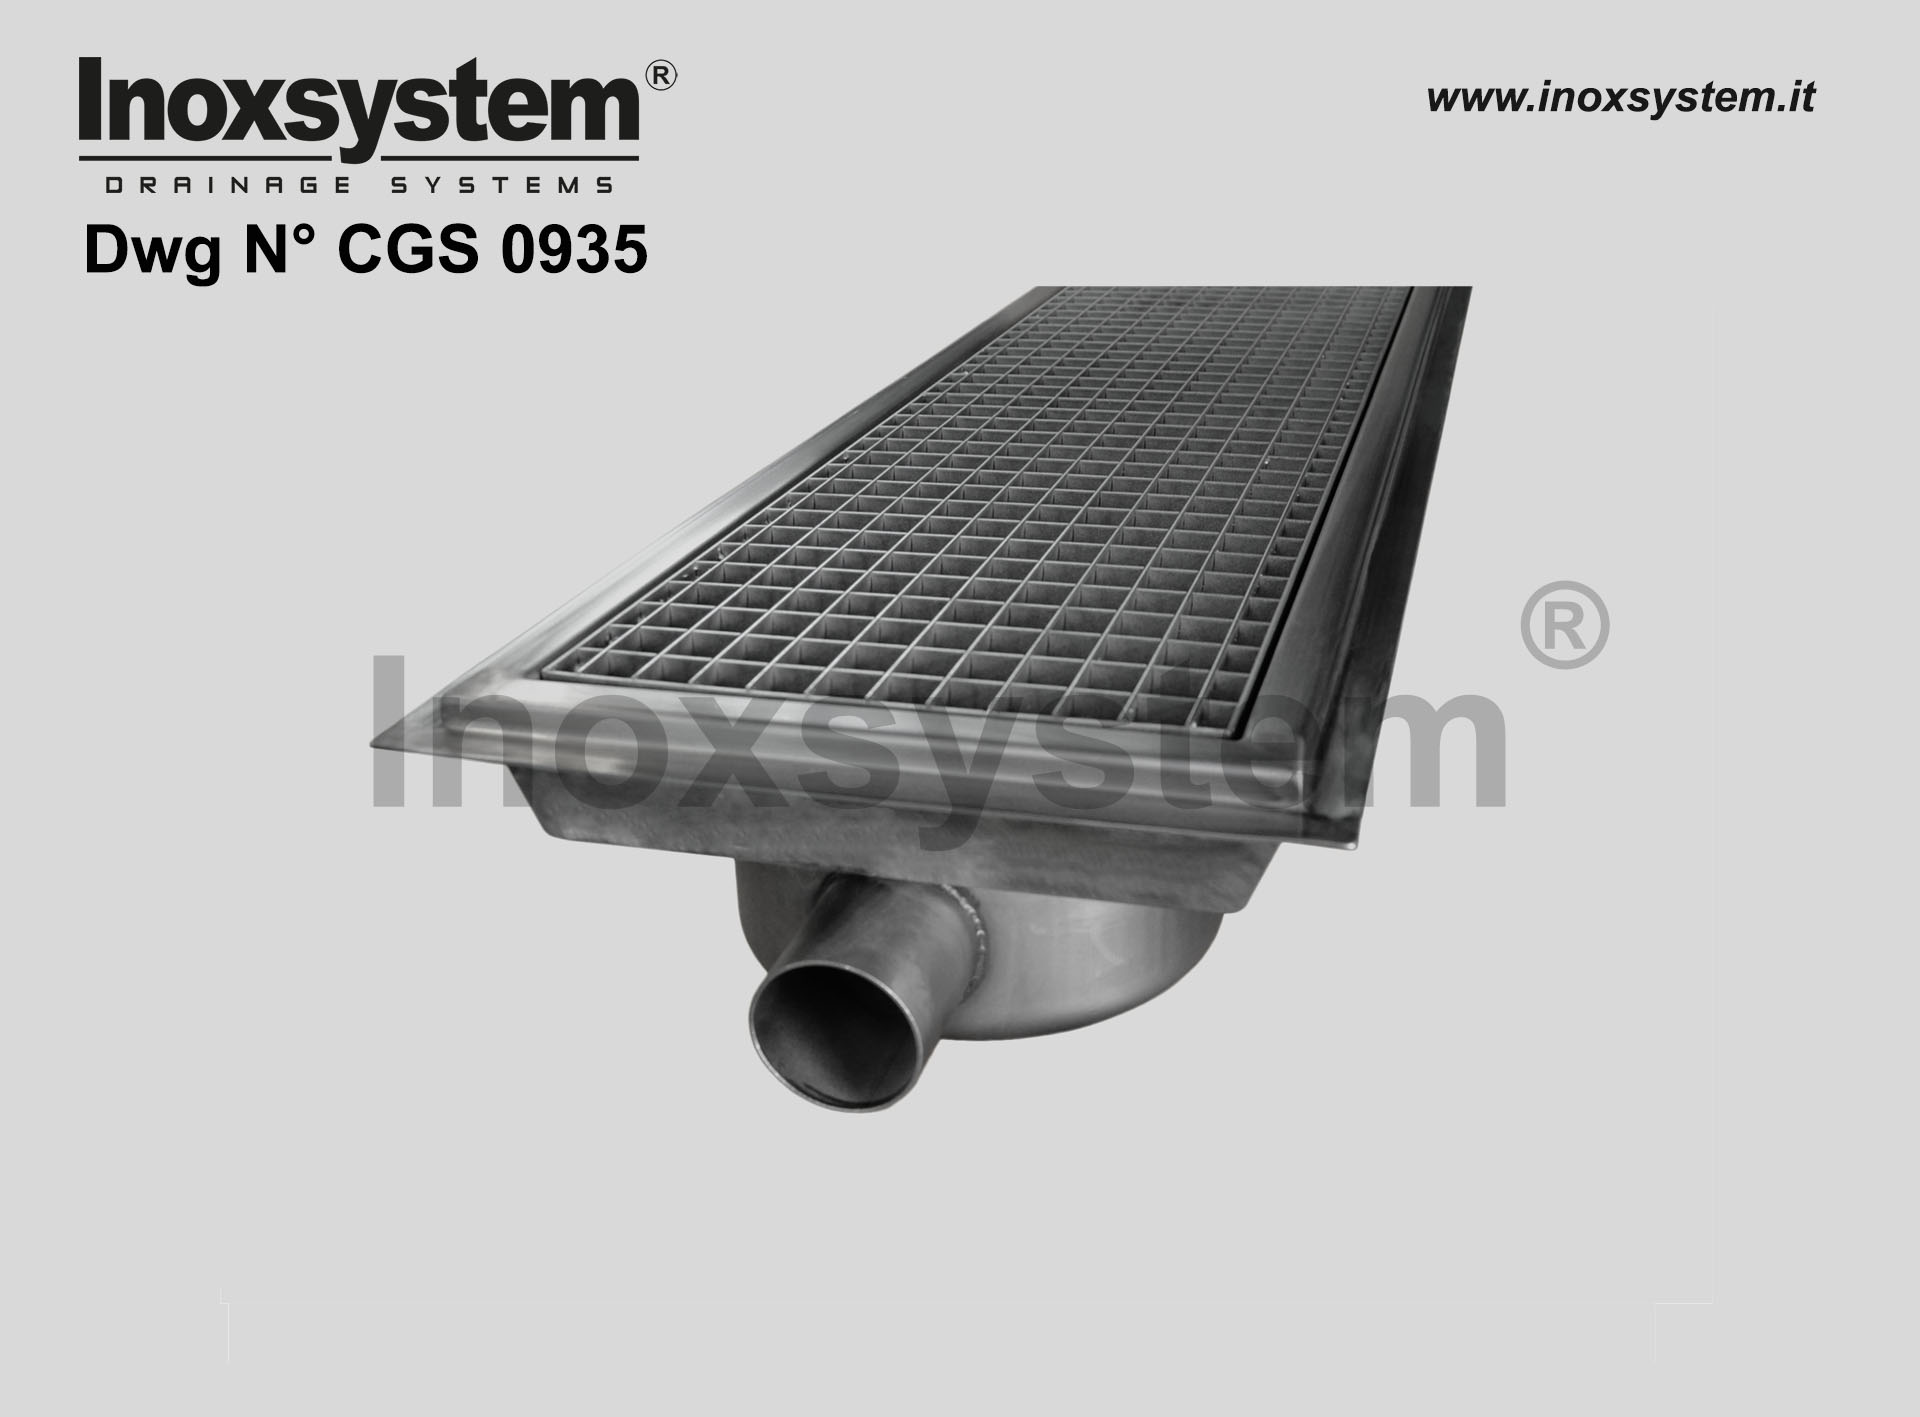 Stainless steel  waterproof membrane holder for channels with grating